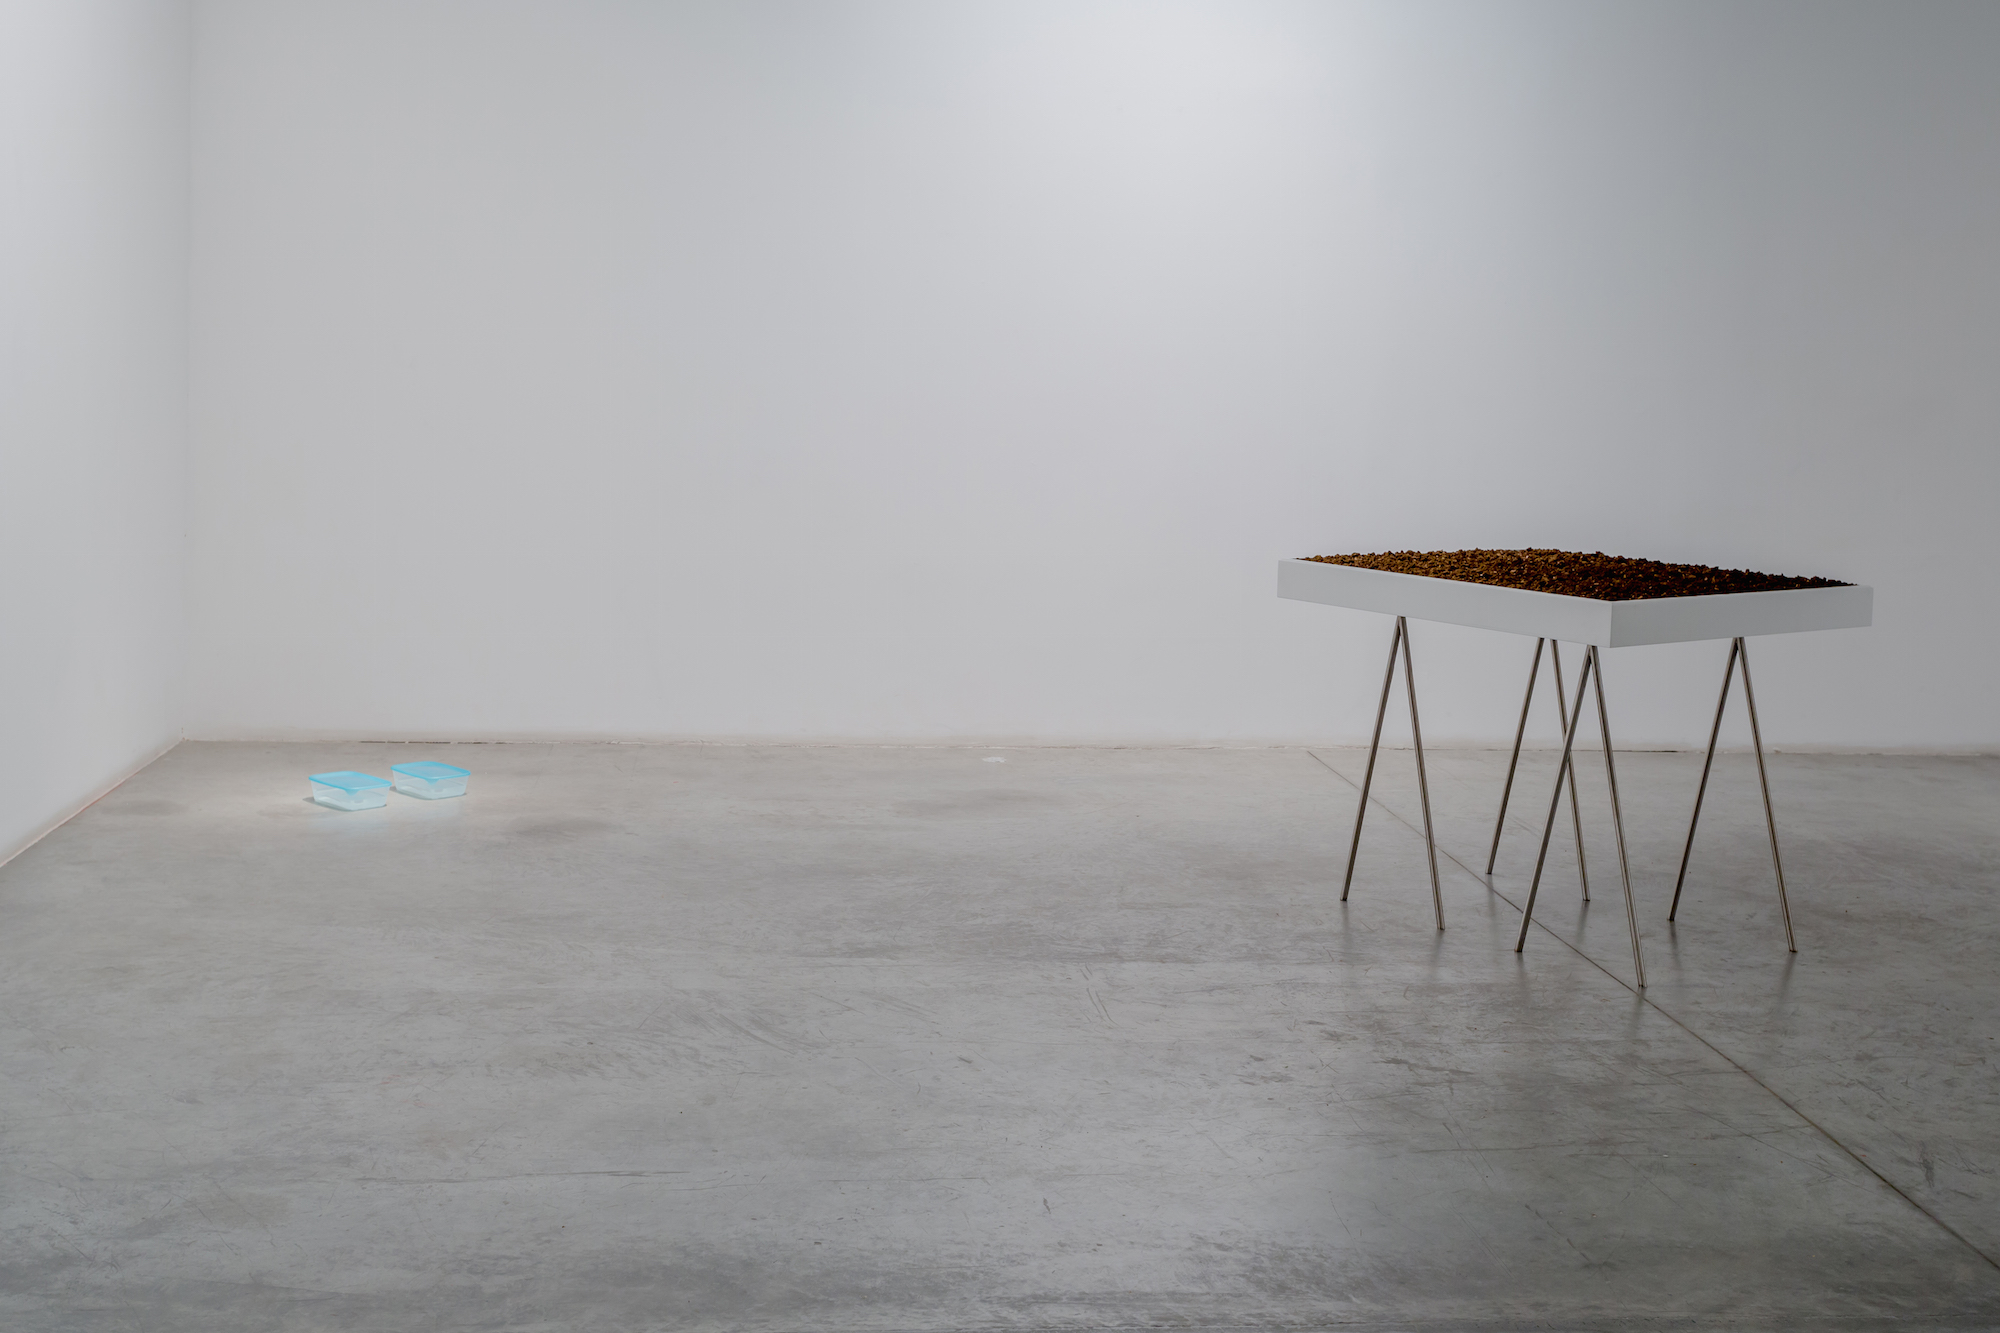 Installation view / I stood in the middle of the strait of Gibraltar and I dropped my left tear in the Atlantic ocean, and my right tear in the Mediterranean sea